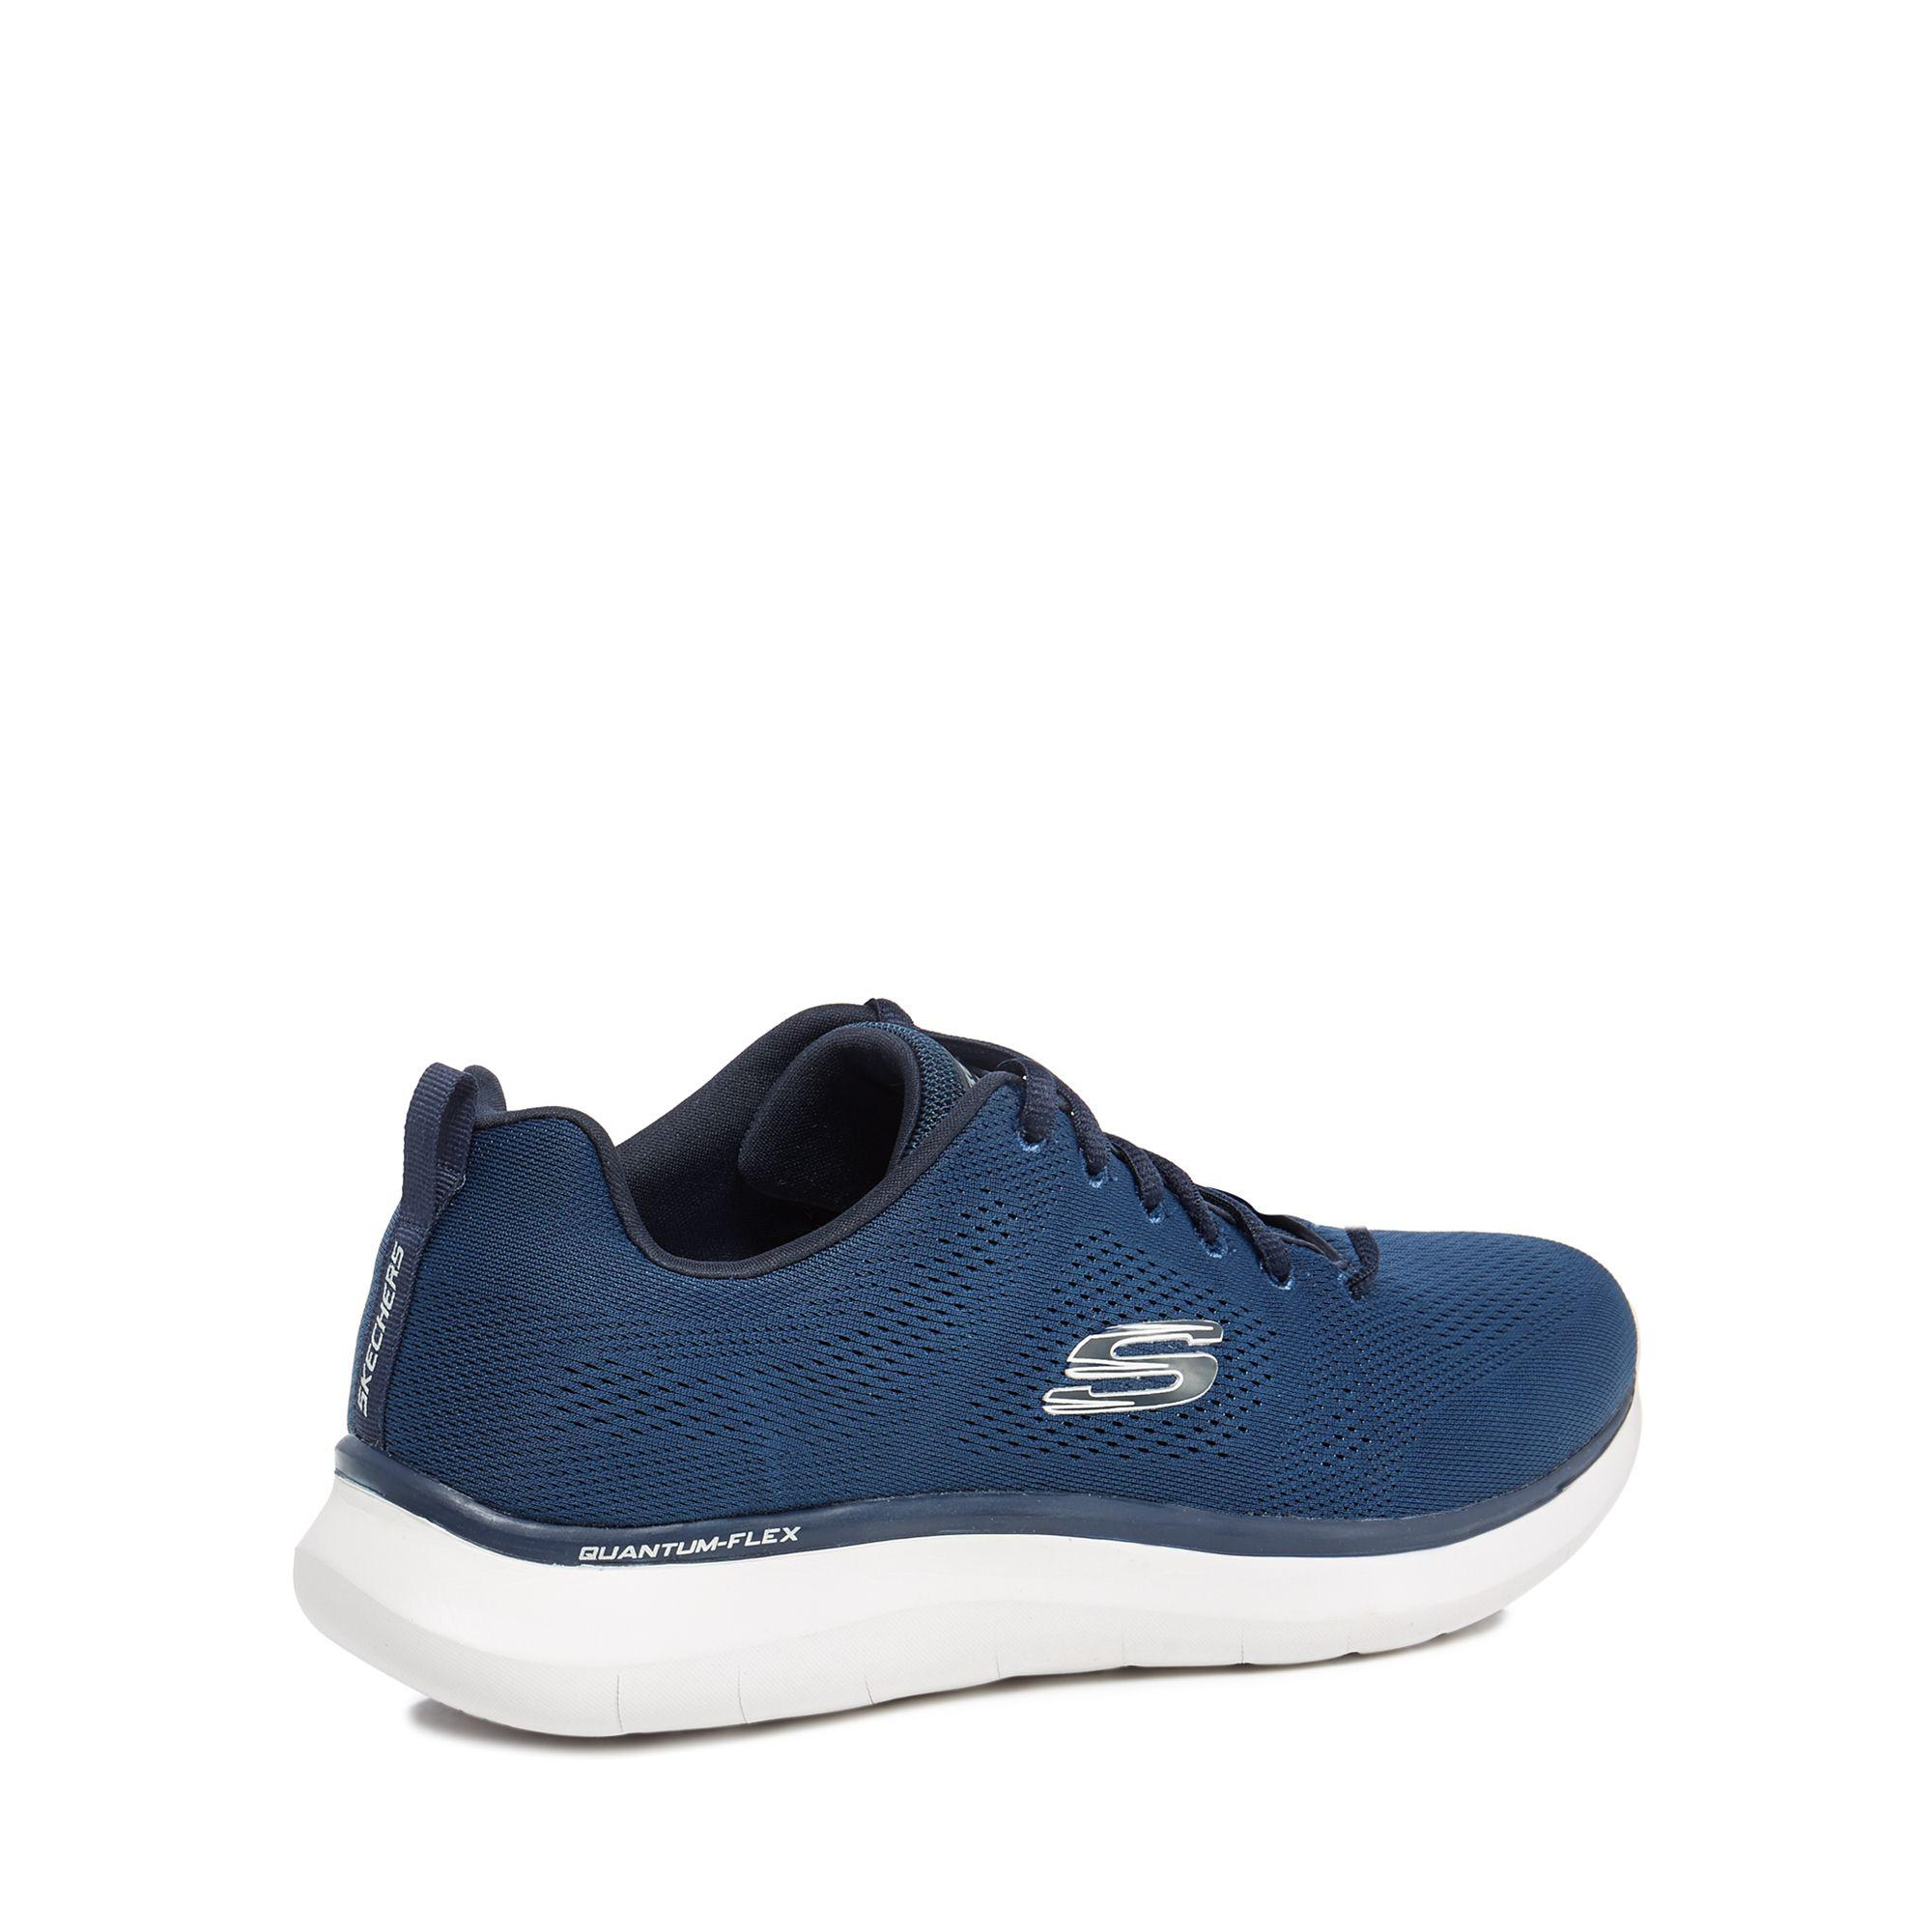 Skechers Lace Navy 'quantum' Trainers in Blue for Men